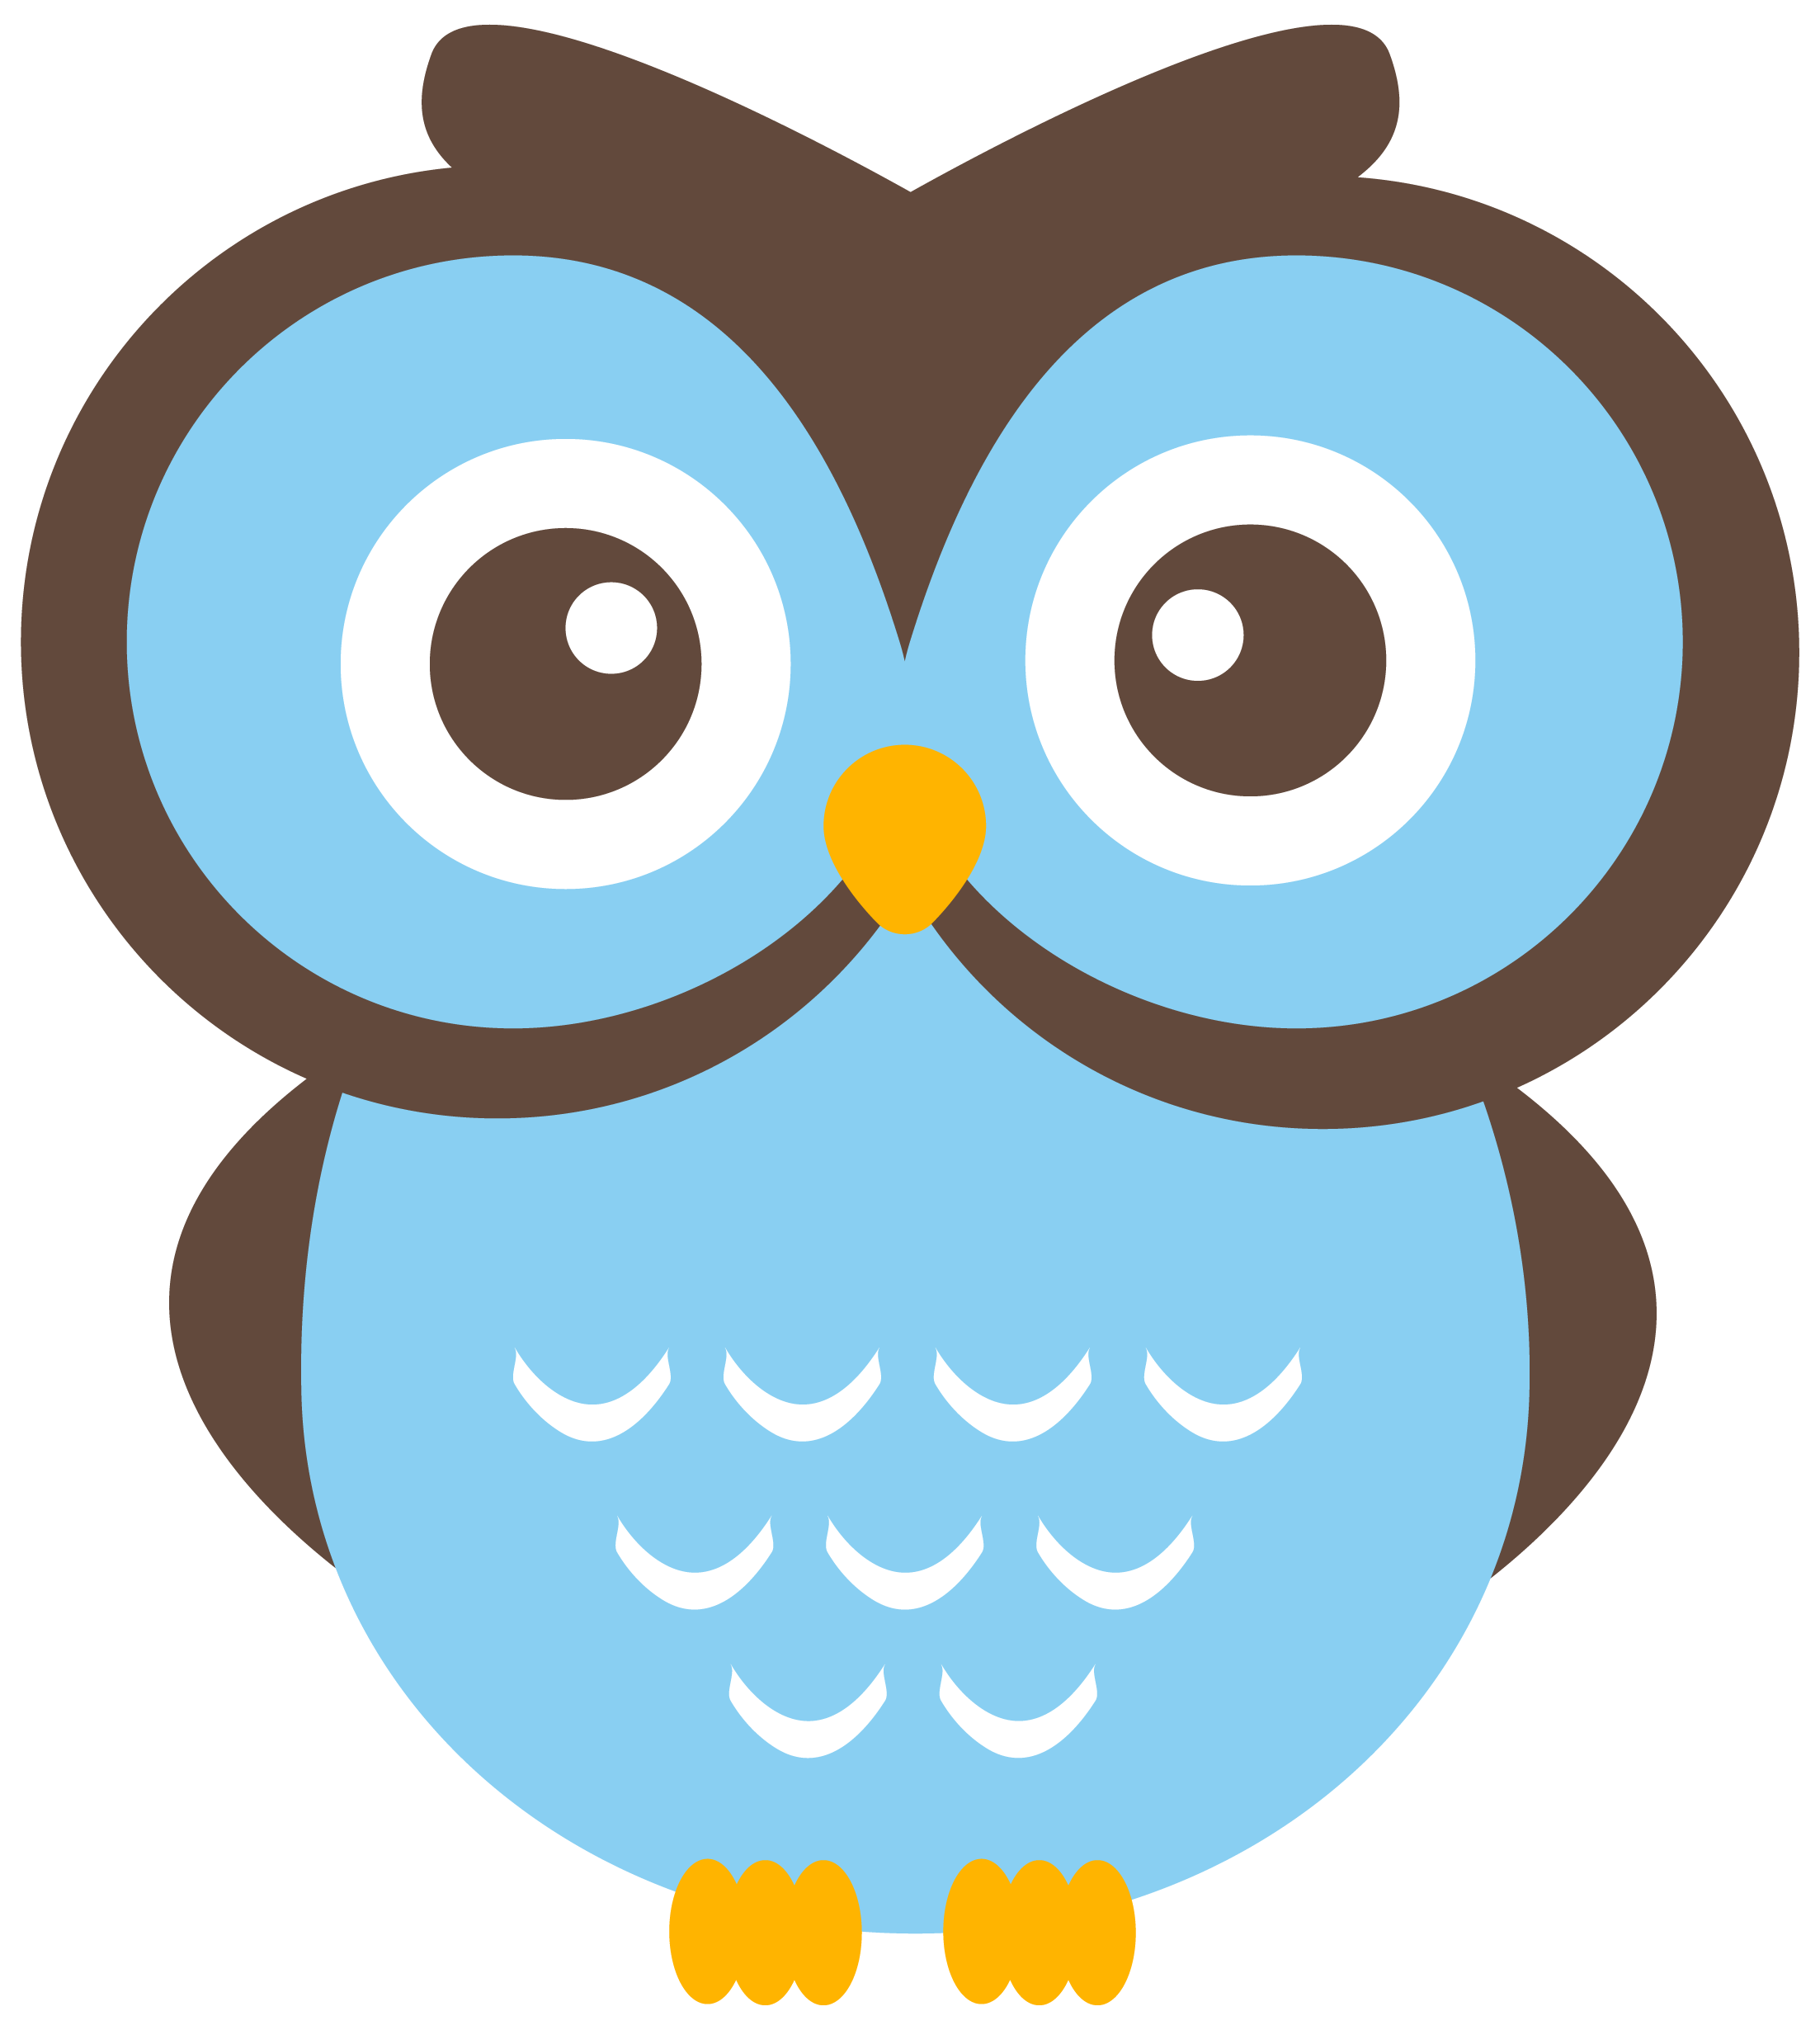 Owls on clip art. Ears clipart owl